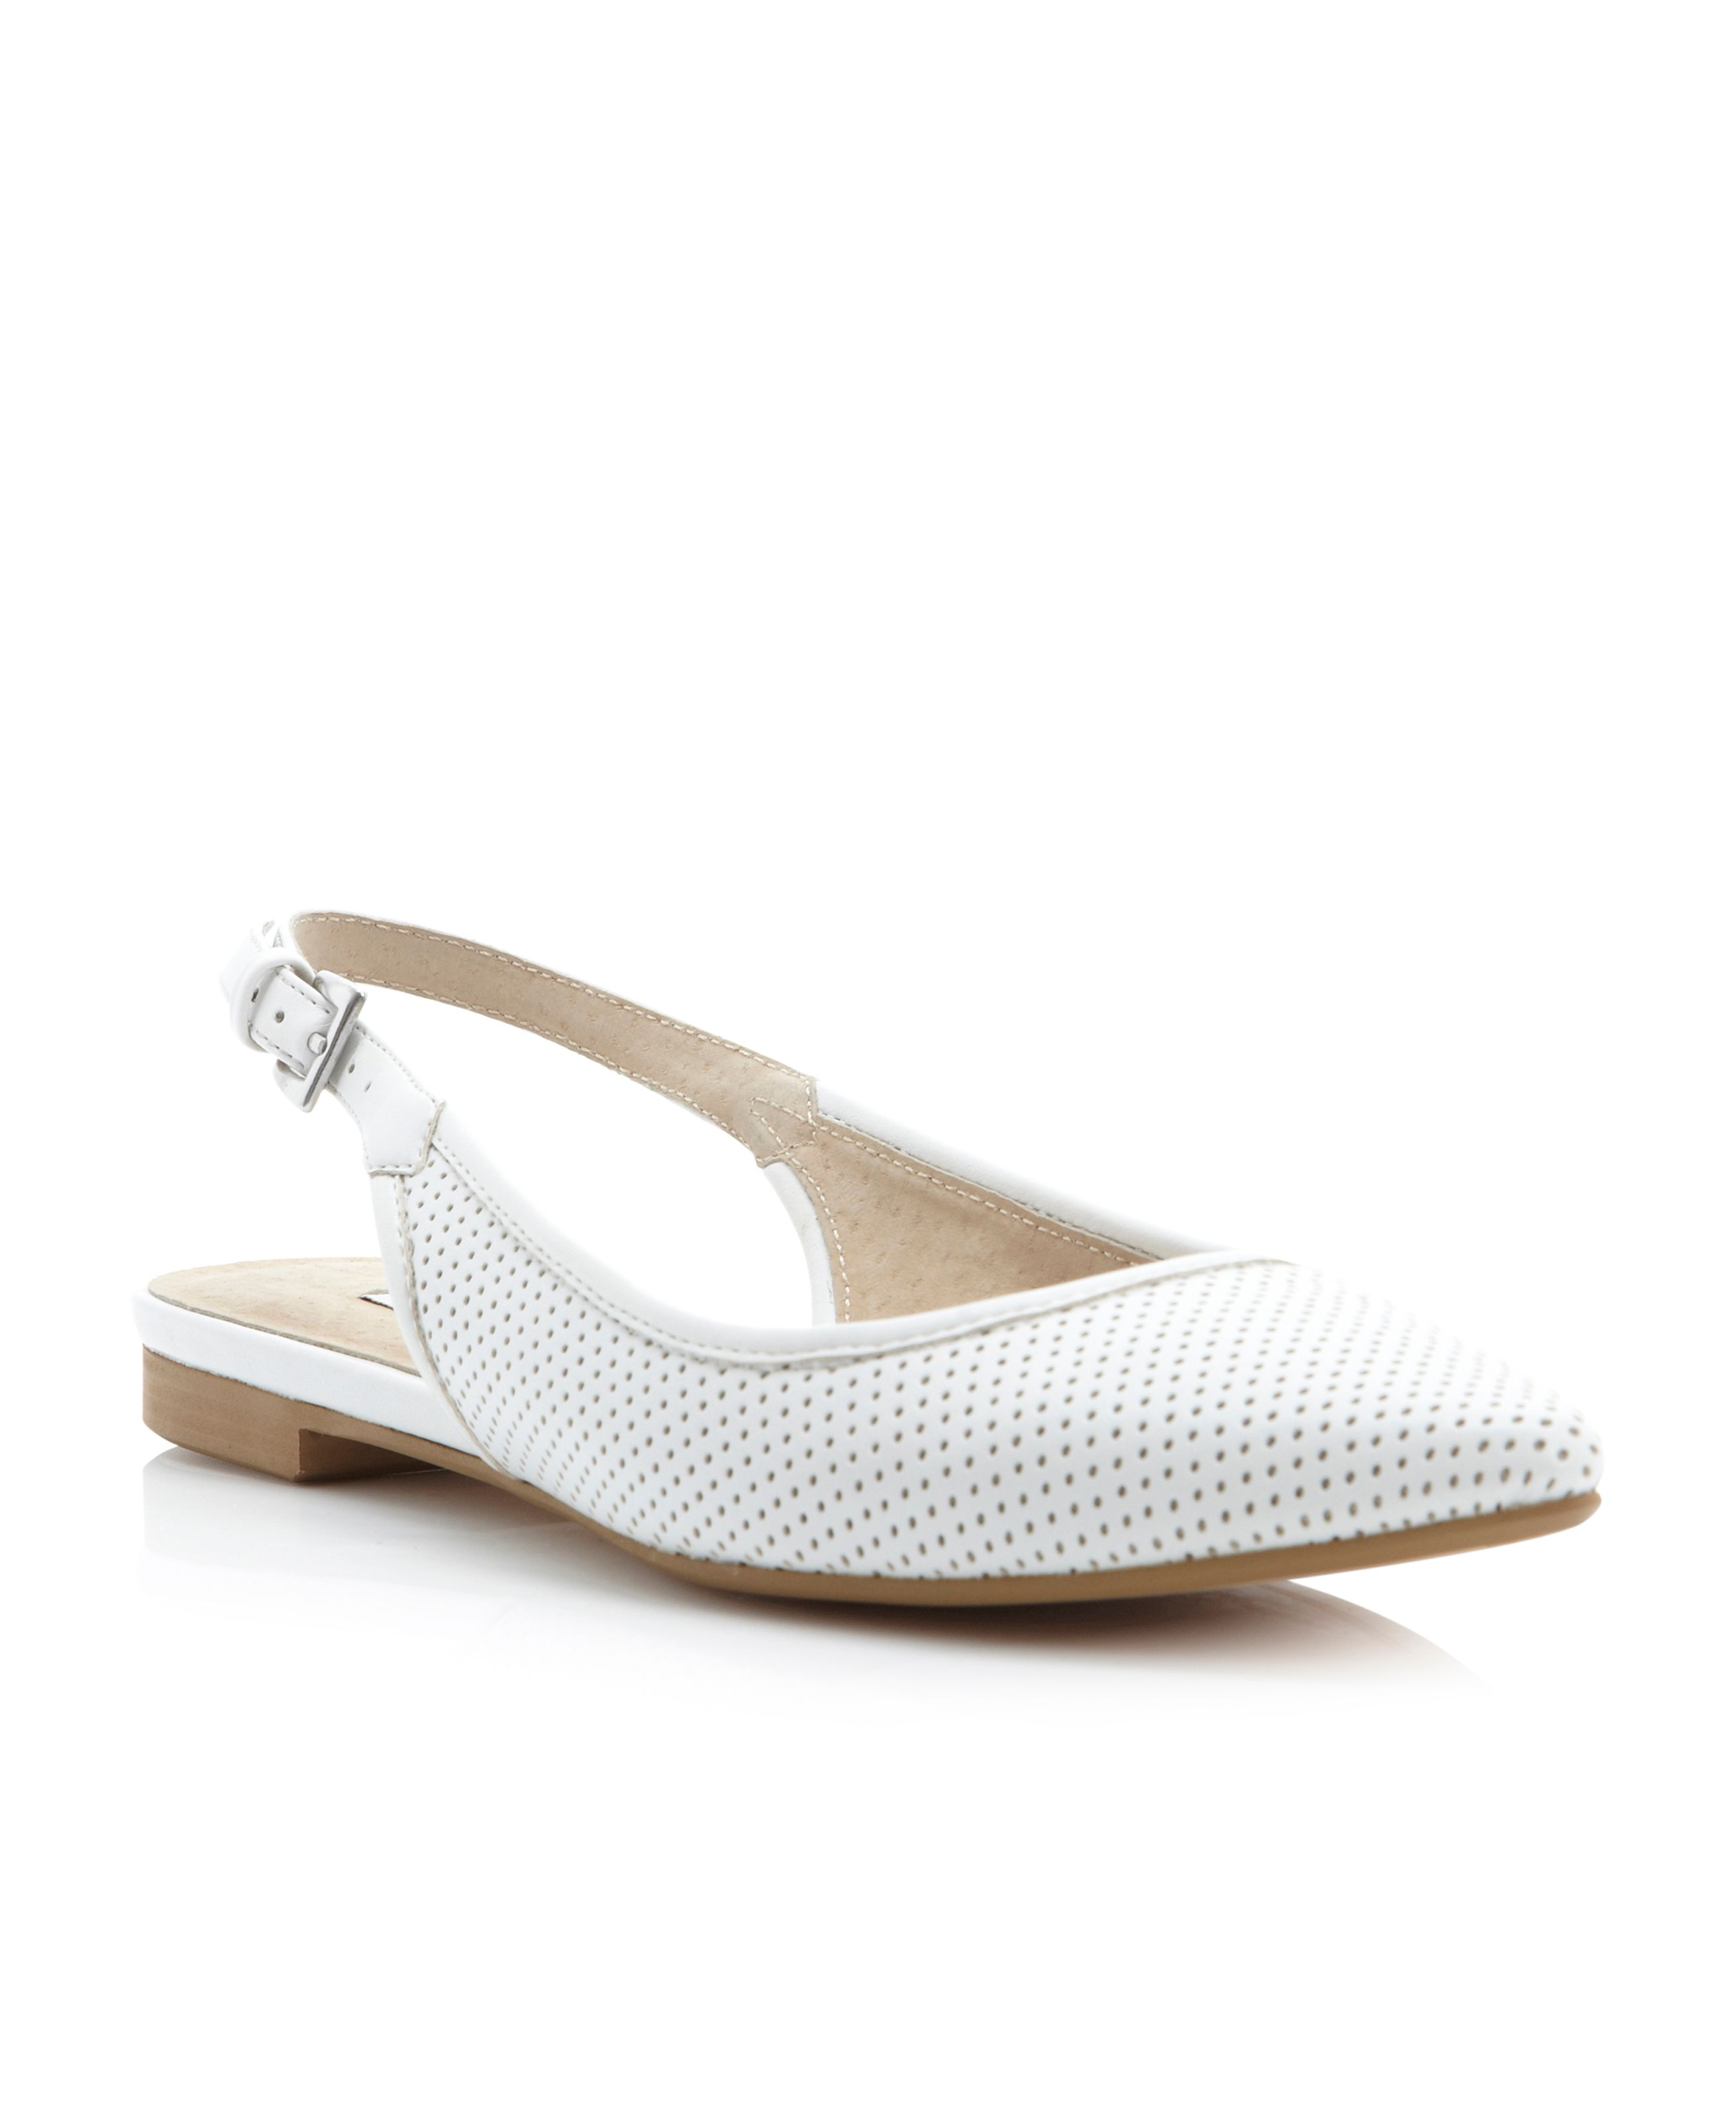 Mardisling perforated slingback ballerina shoes